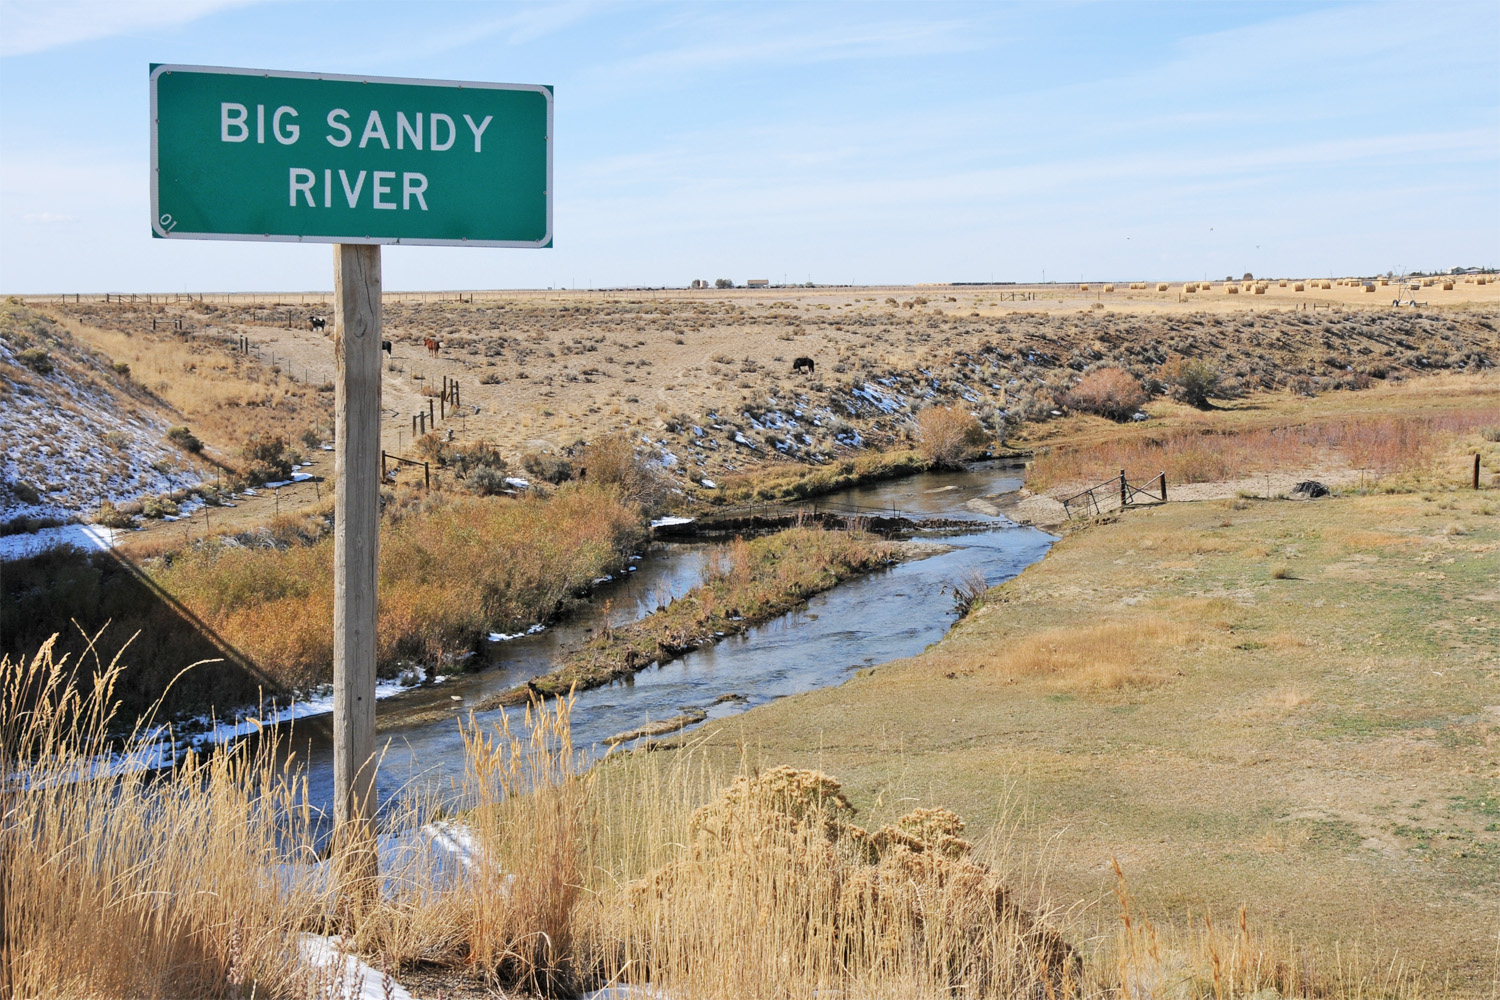 A monument on the Big Sandy River commemorates the meeting on the Little Sandy in Wyoming.